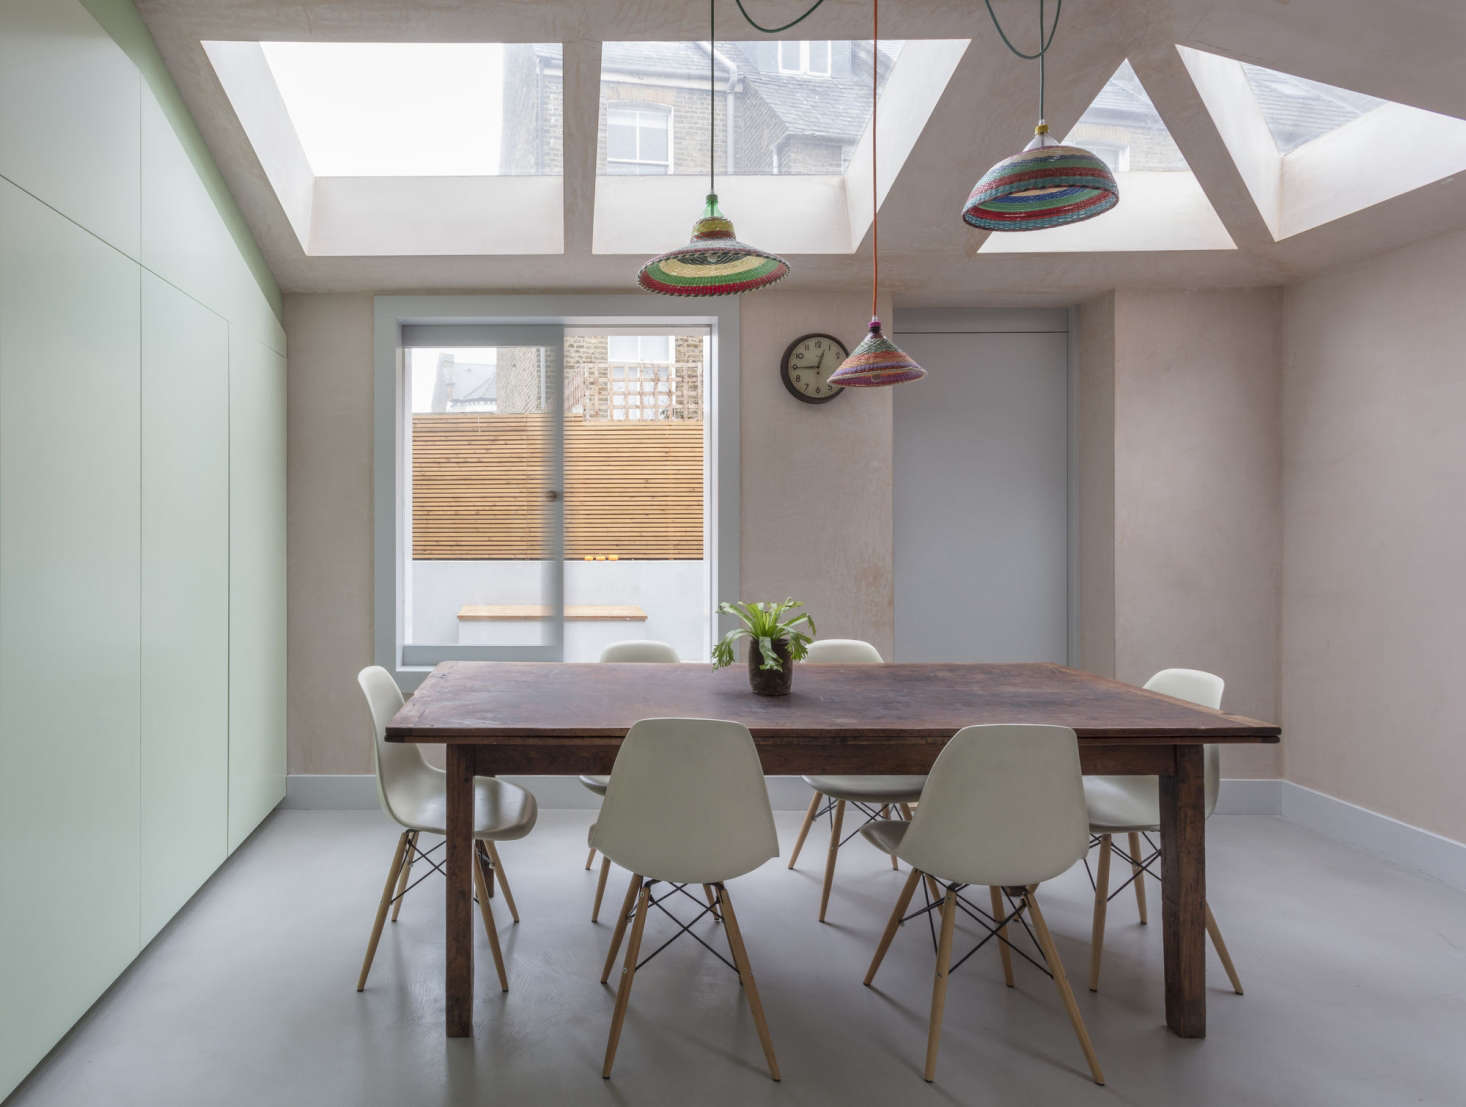 """Pale pink was selected for the walls during the course of construction: """"The plaster we use comes in a pink tone, then it usually gets skimmed and painted. But when we saw the work in progress, we all fell in love with the depth and color, so it was easy to convince our clients to leave it exposed,"""" Dumciute tells us. """"Pink inside and out was a happy coincidence, really."""""""